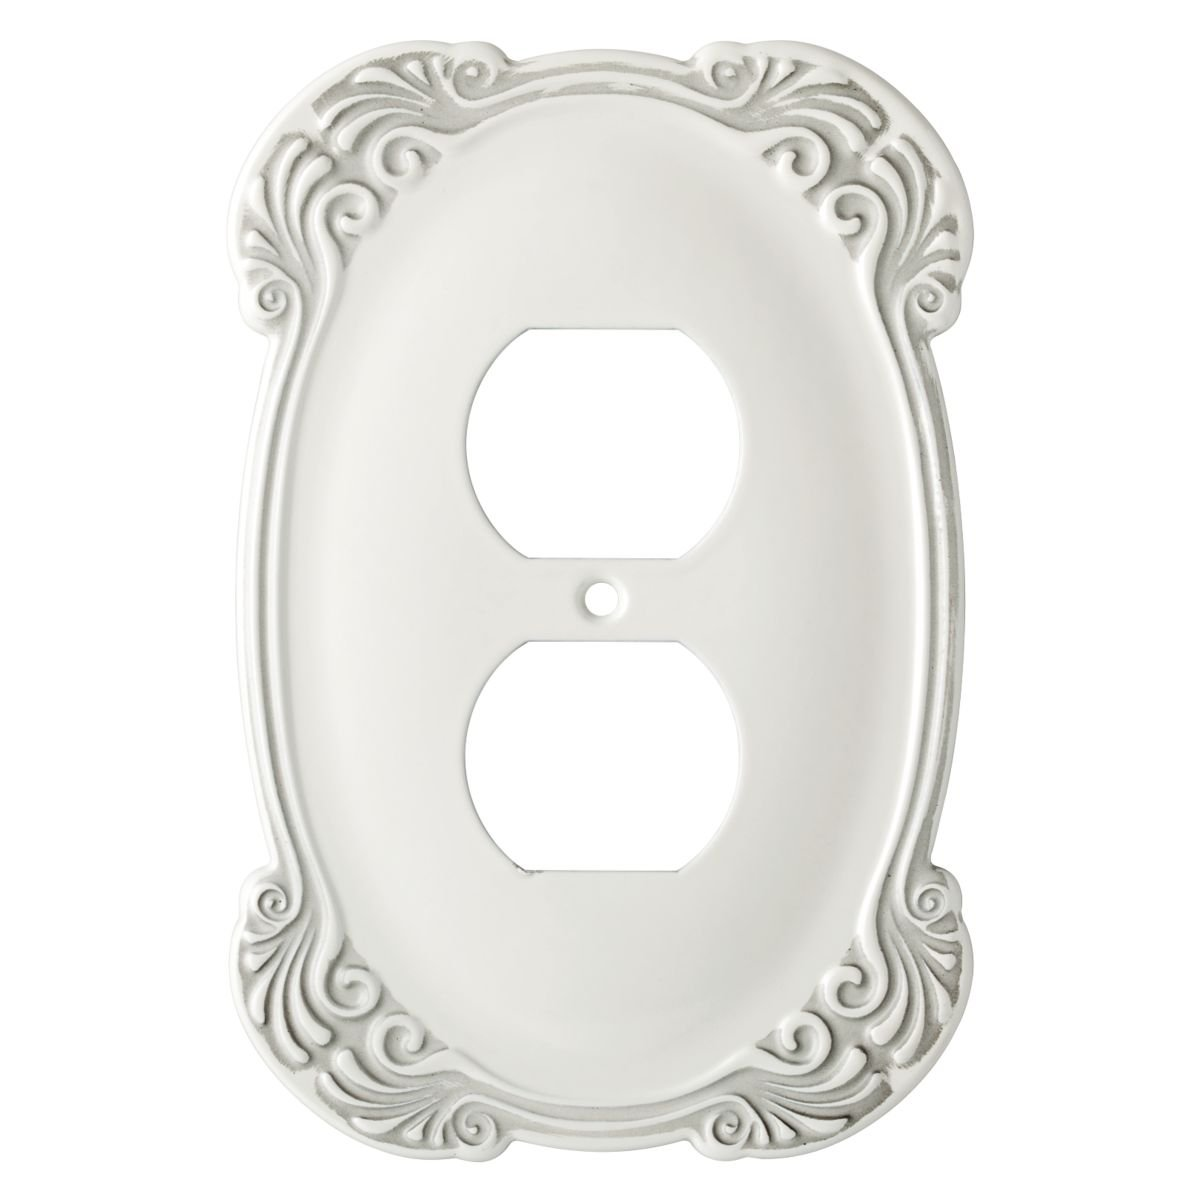 Franklin Brass 144394 Arboresque Single Duplex Wall Plate / Switch Plate / Cover by Franklin Brass